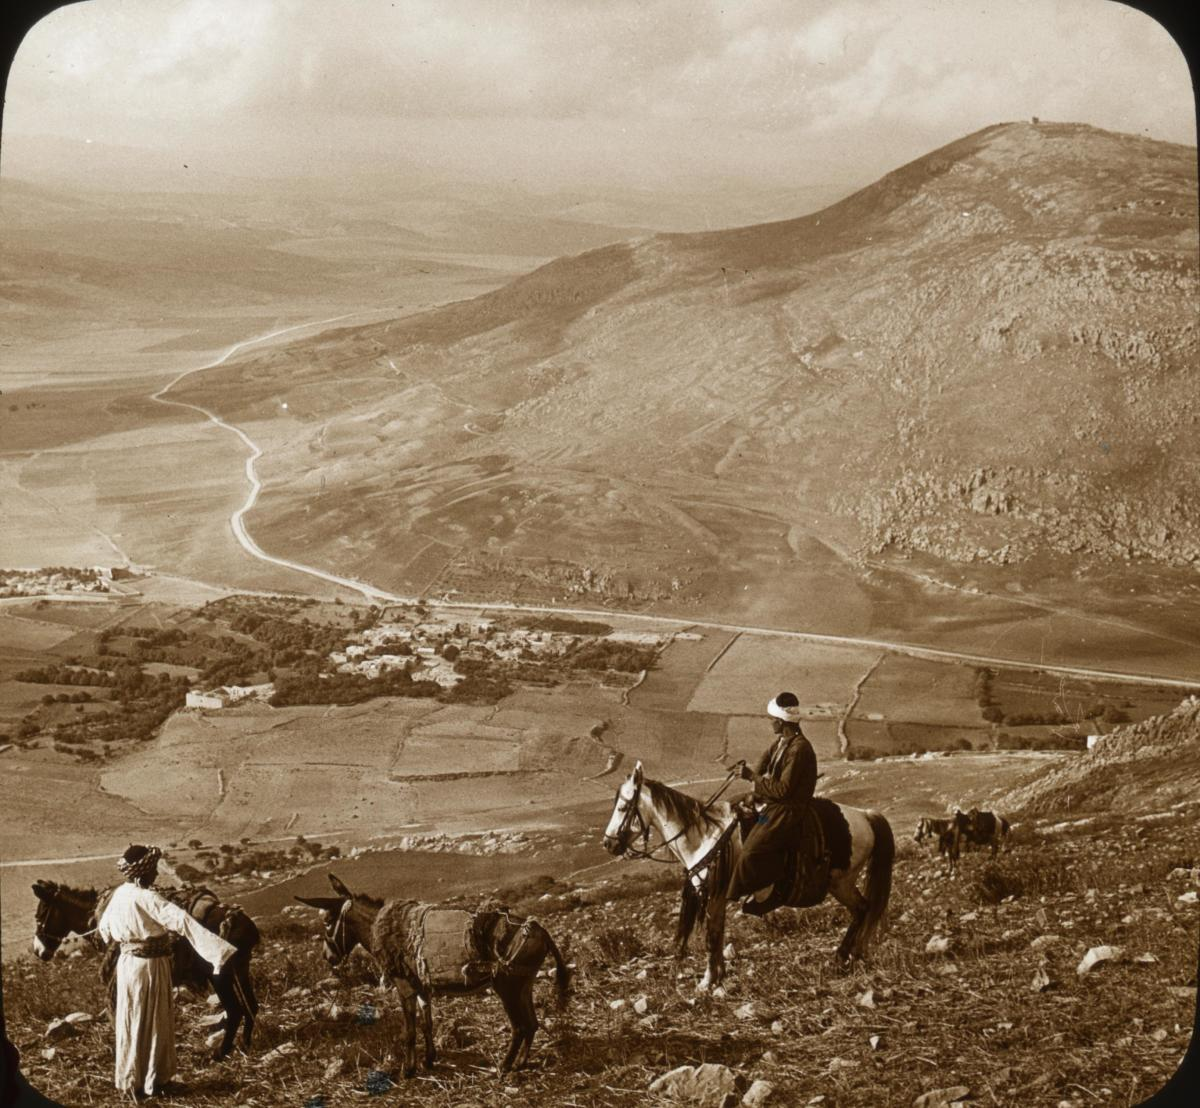 Mount Gerezim and Mount Ebal - Where the Blessings and Curses Were Spoken